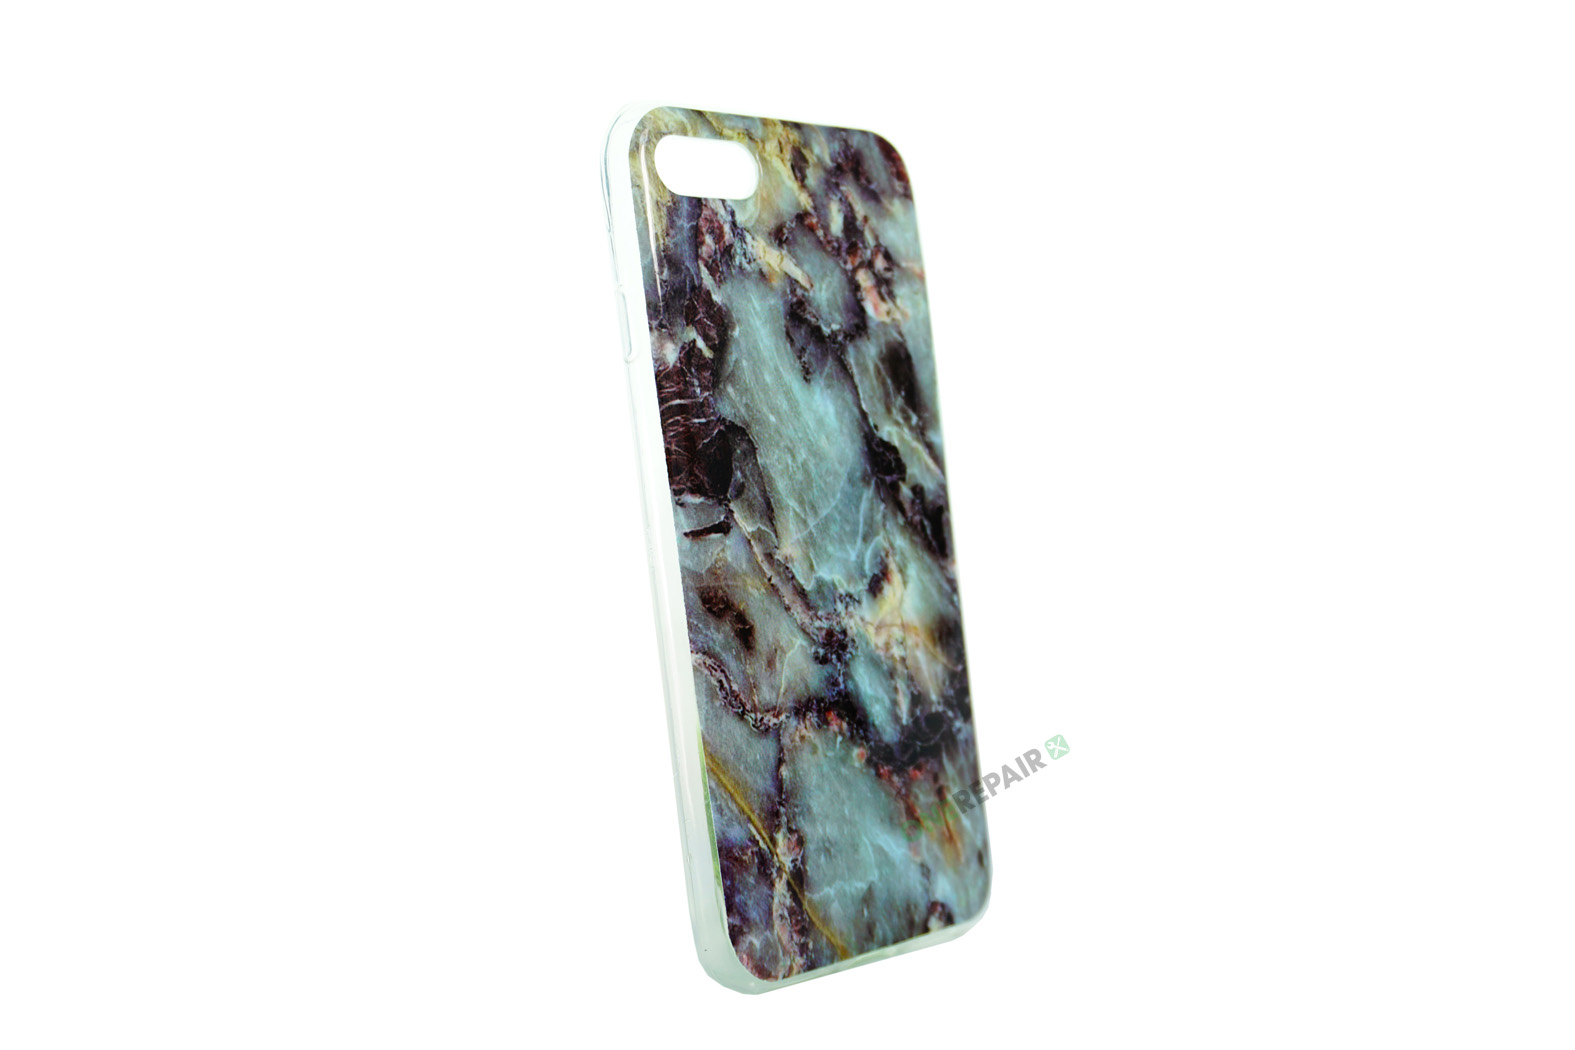 350800_iPhone_7:8_Moenster_Marmor_Motiv_Cover_Moerk_OneRepair_00002